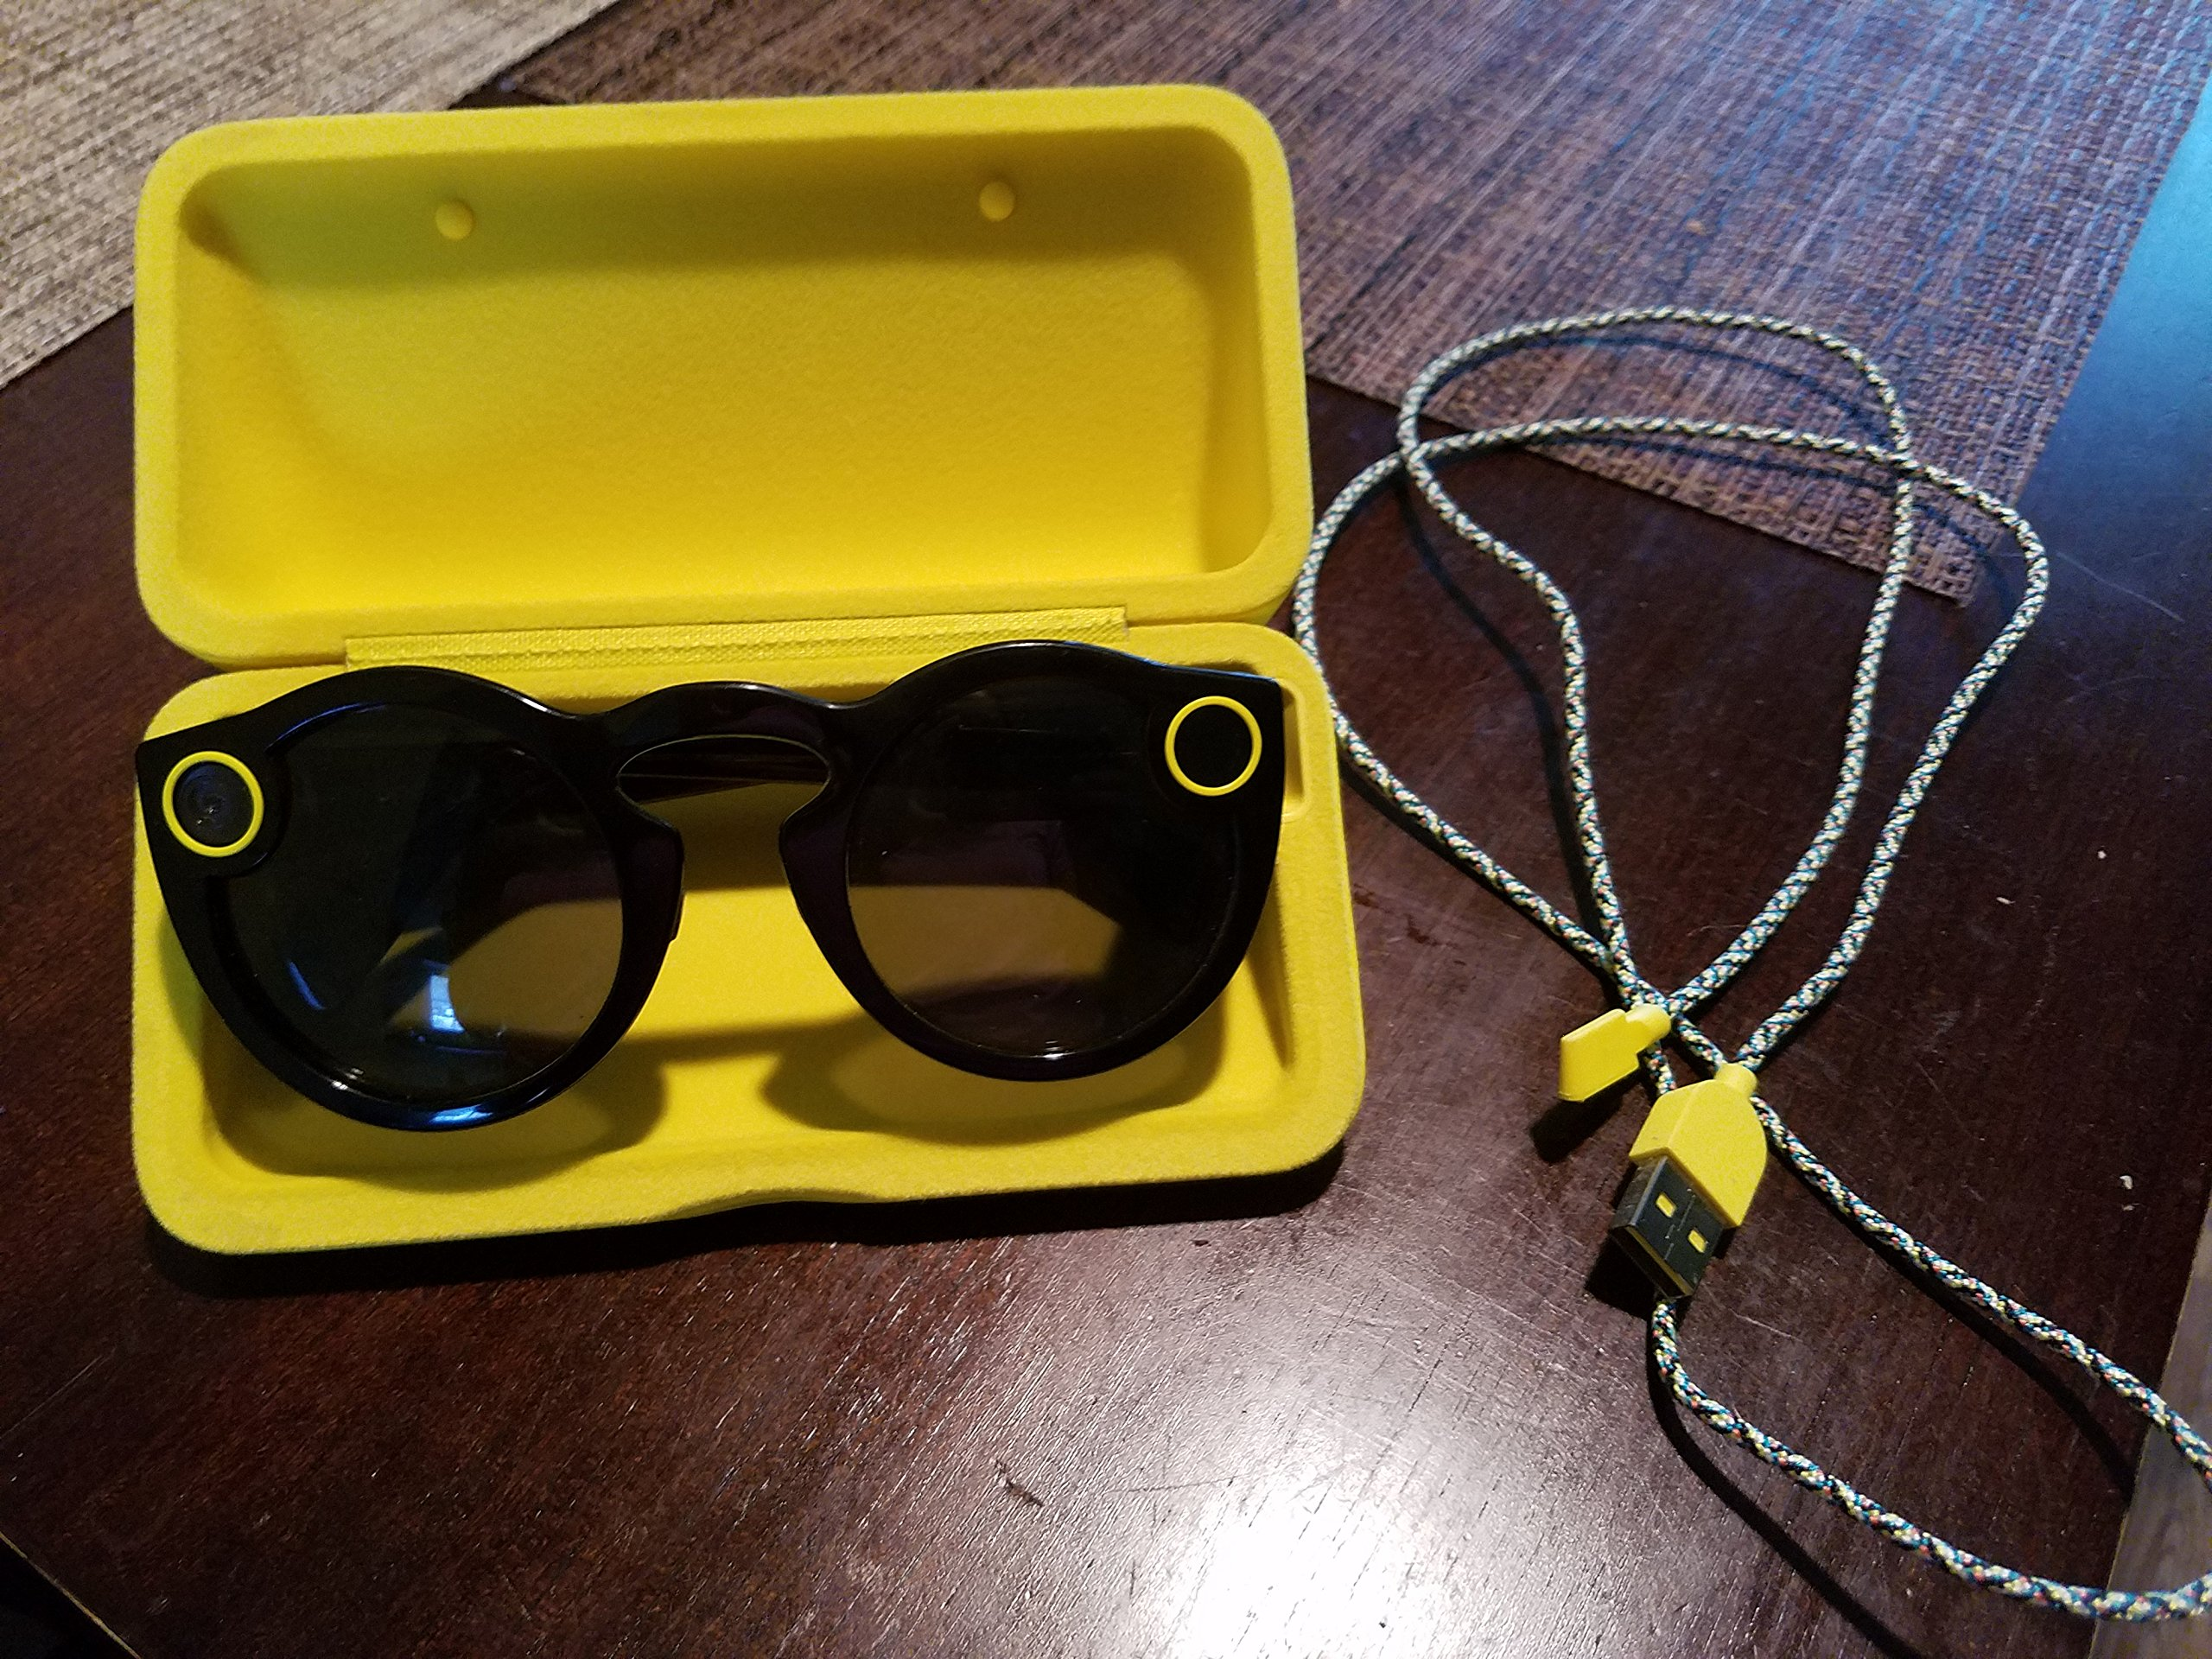 Snapchat Spectacles Sunglasses - black, teal and coral by Spectacles